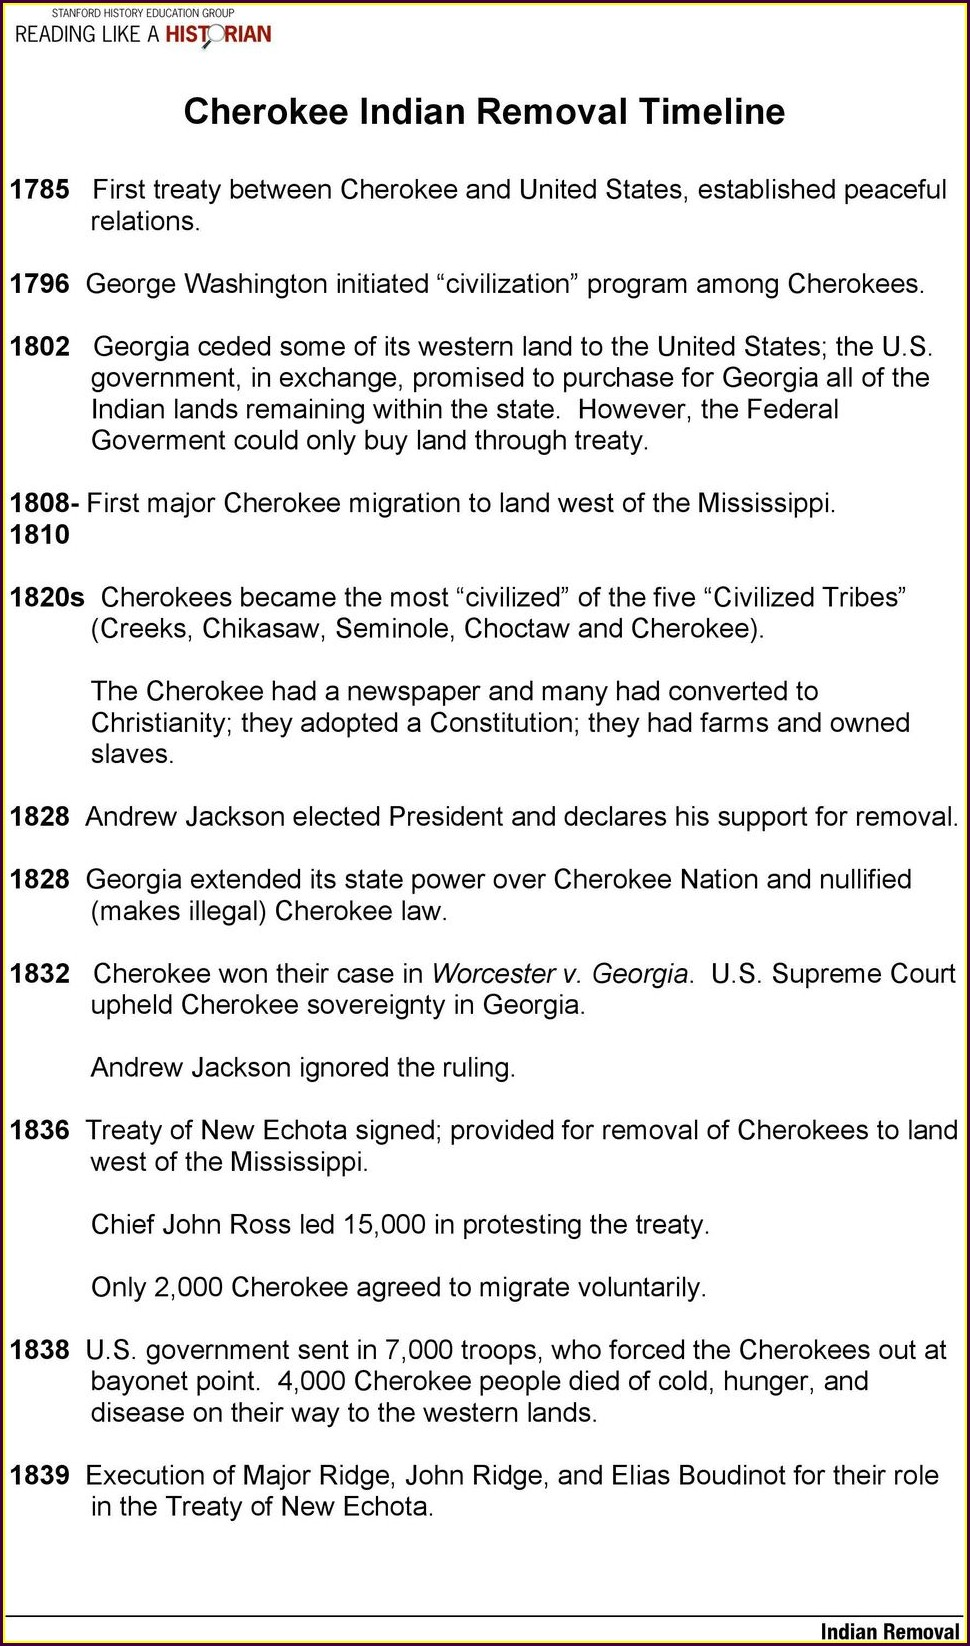 Indian Removal Timeline Worksheet Answers